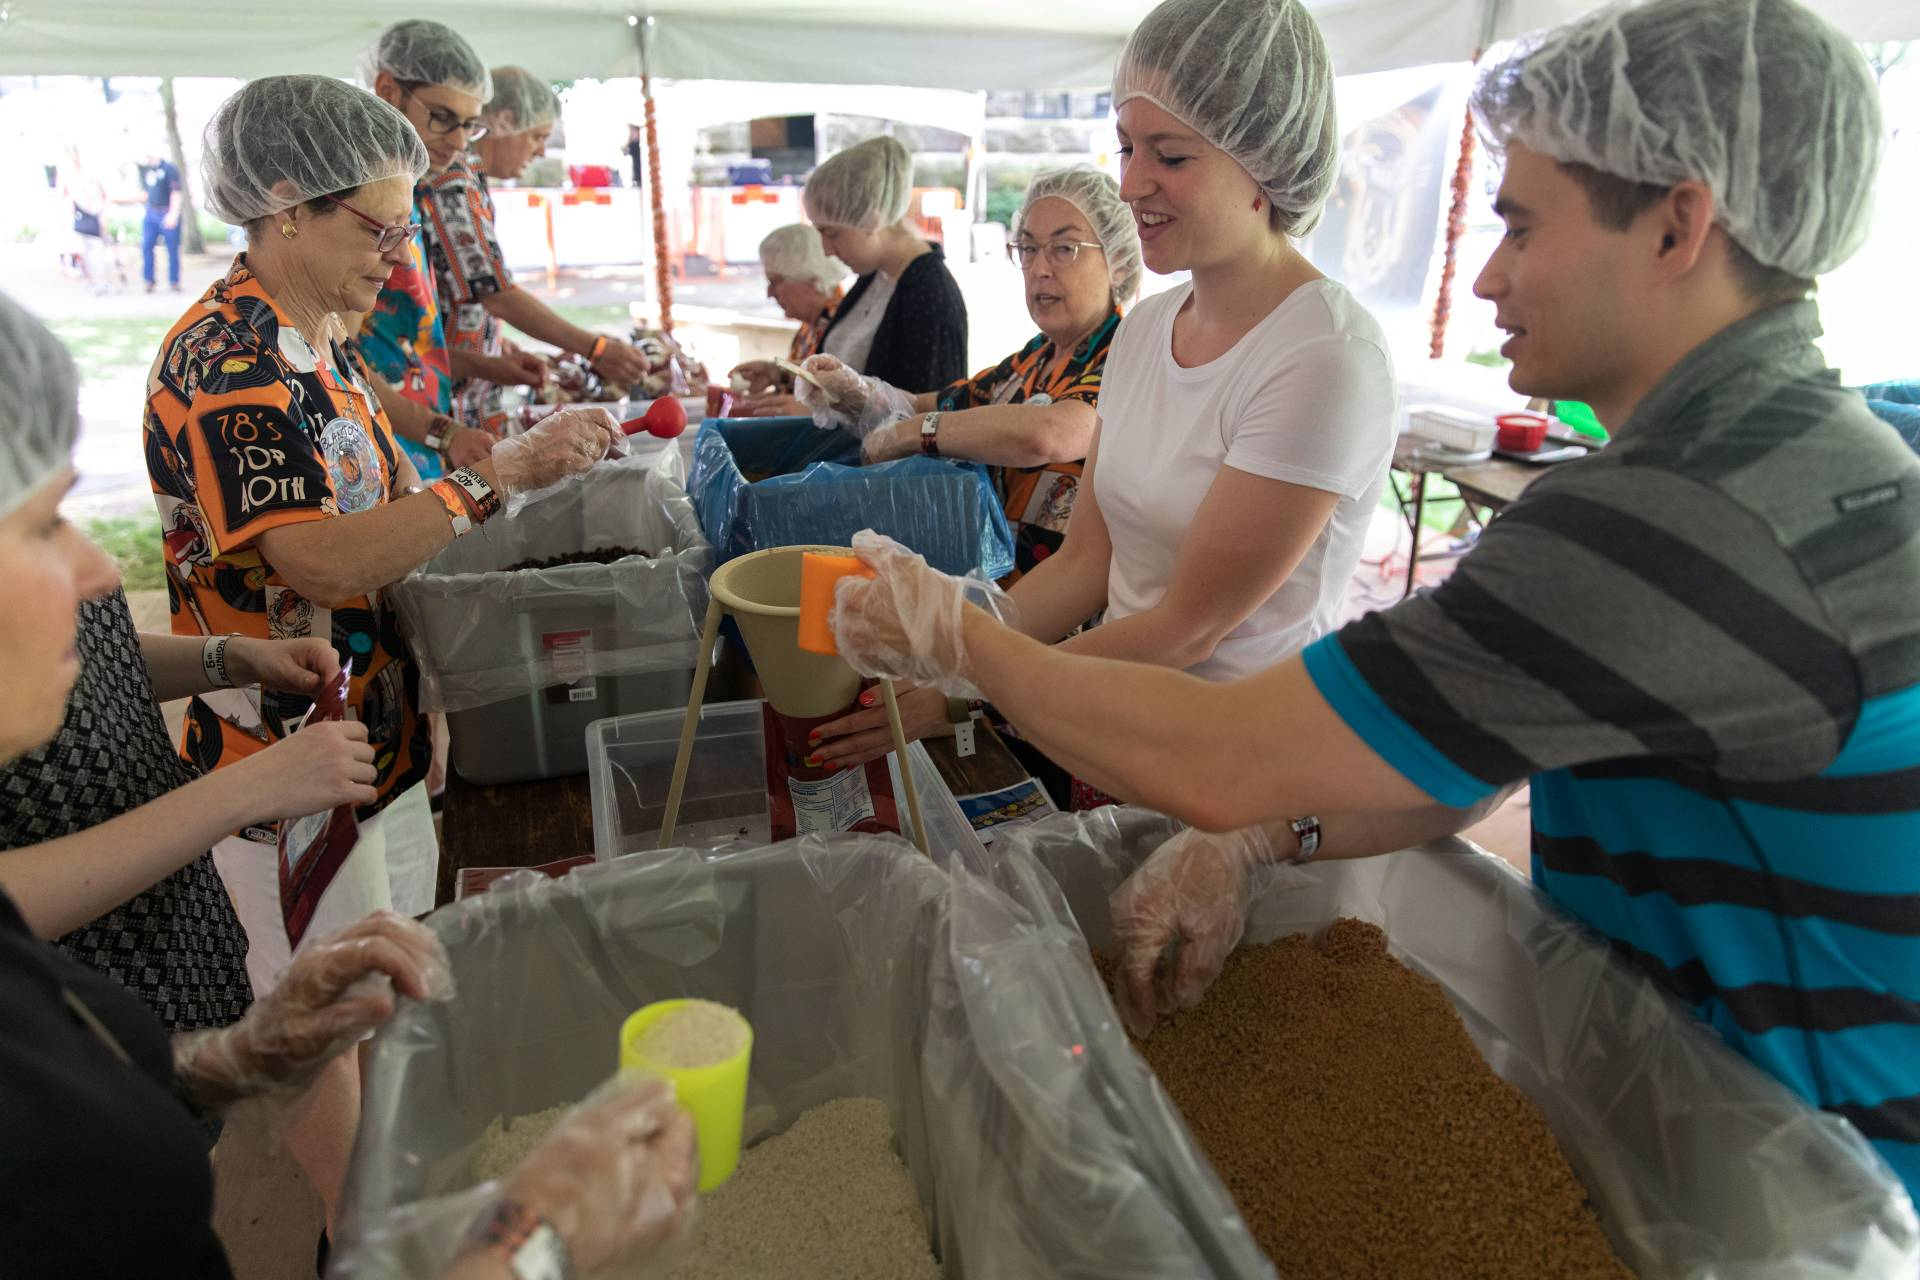 Alumni packing lunches for Kids Against Hunger during reunions